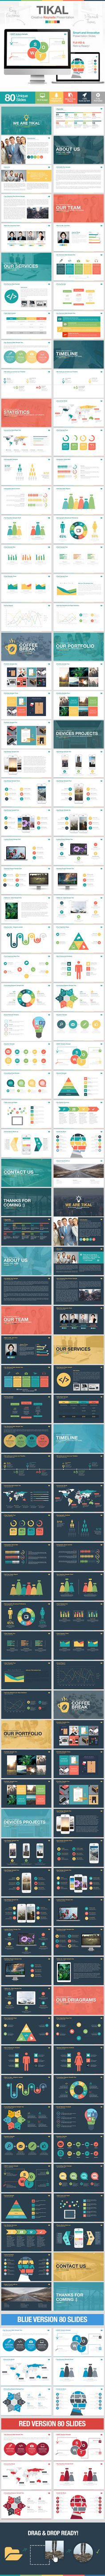 Tikal Keynote Presentation Template | #keynote #keynotetemplate | Download: http://graphicriver.net/item/tikal-keynote-presentation-template/9436797?ref=ksioks